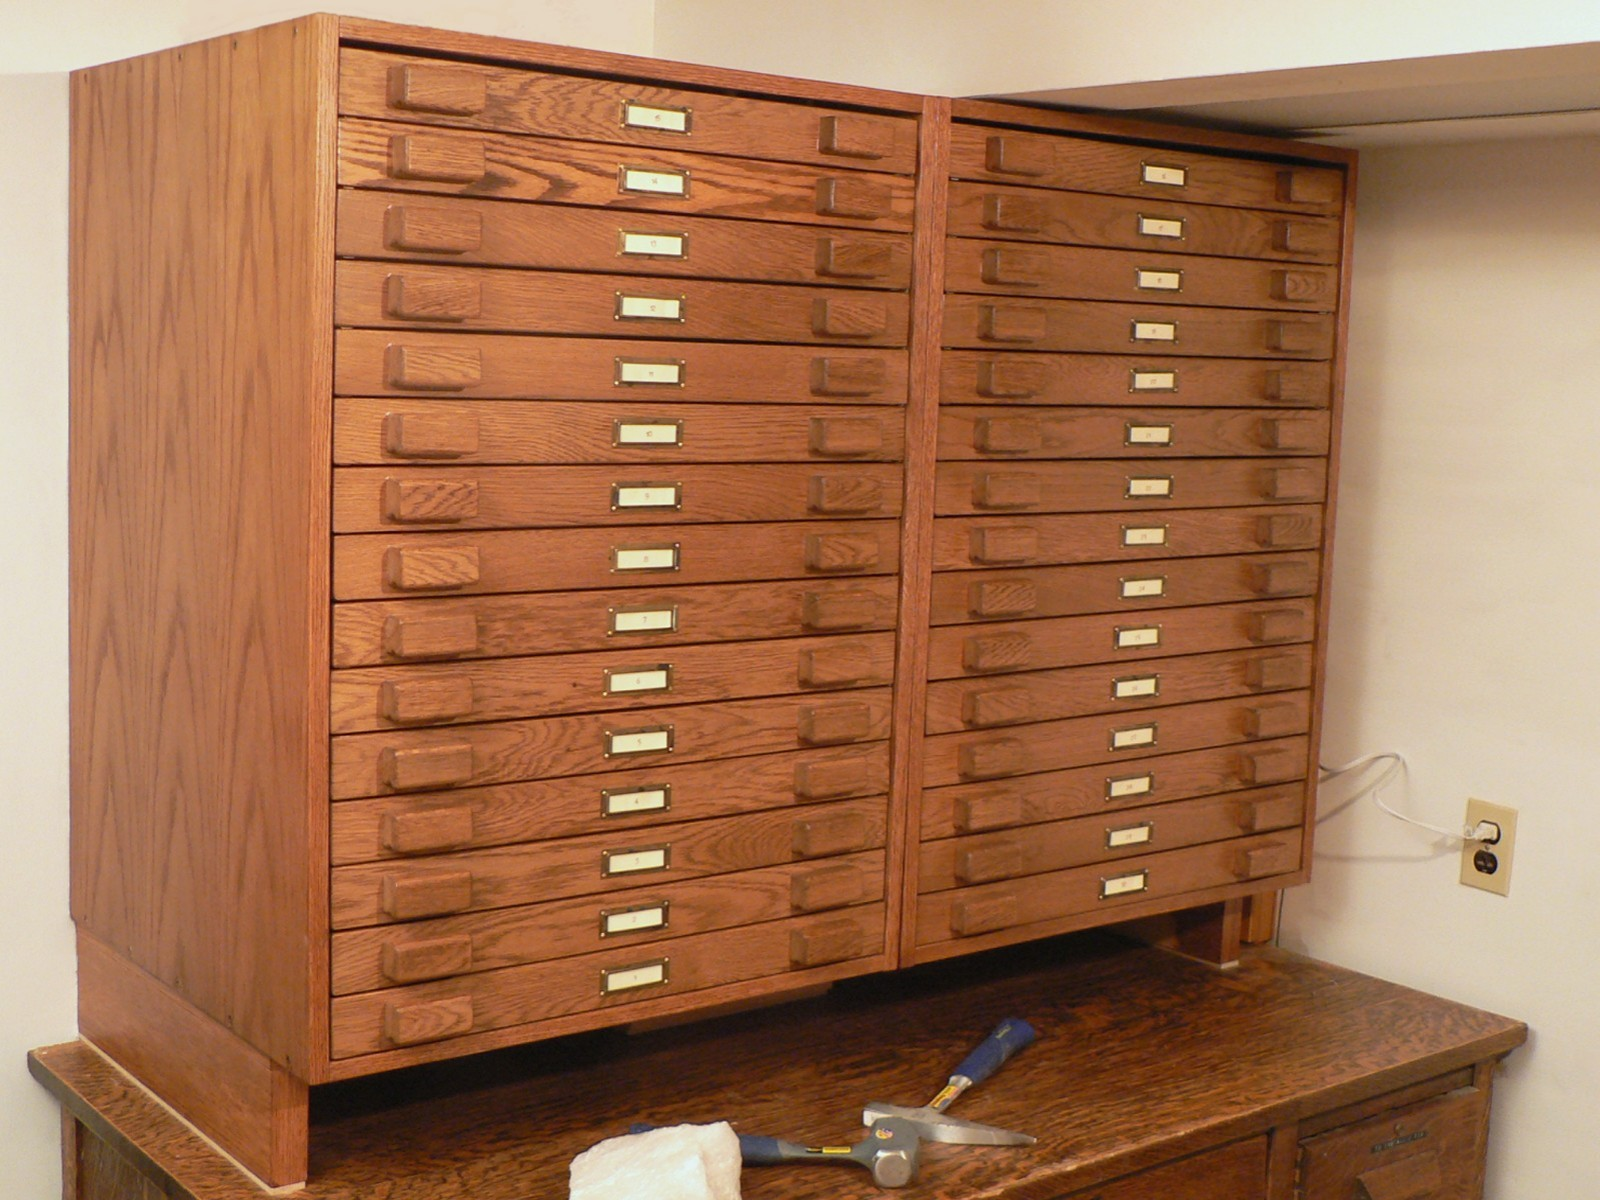 Wonderful Two Cabinets With A Total Of 30 Drawers Allow Storage For 4000 Rock And  Mineral Specimens.